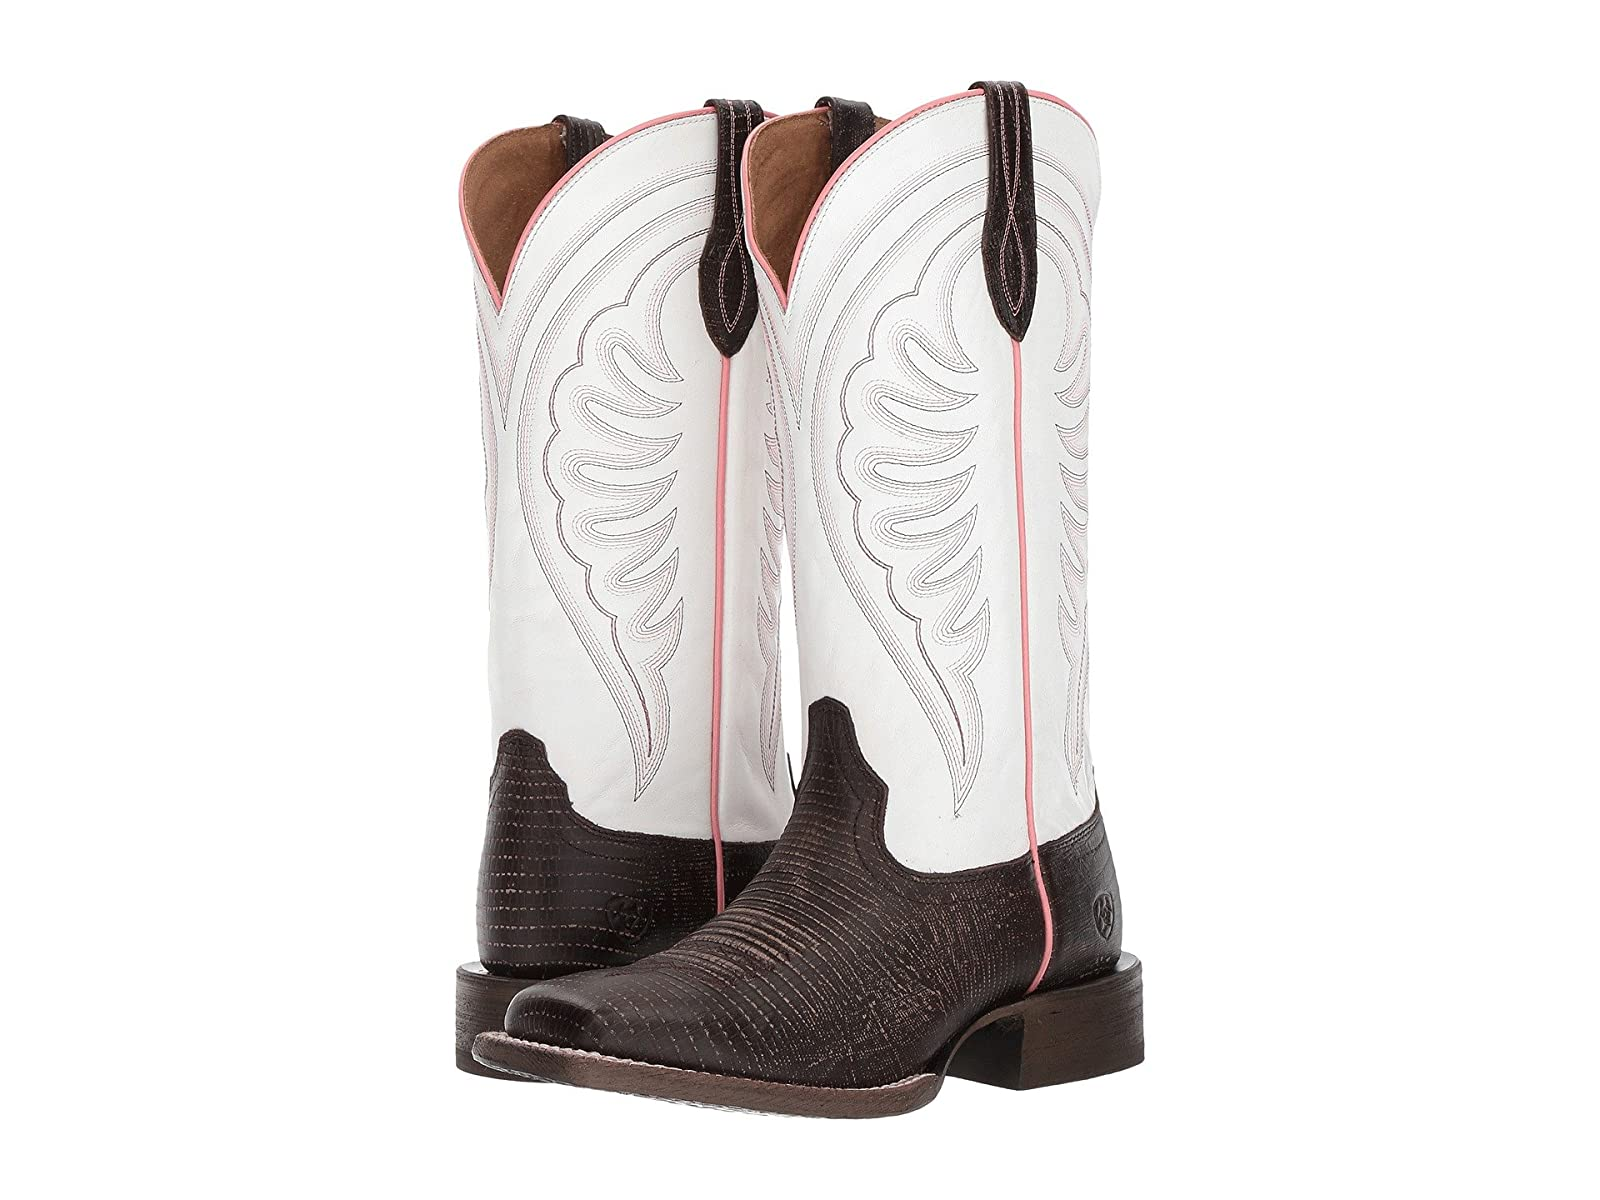 Ariat Circuit ShilohCheap and distinctive eye-catching shoes